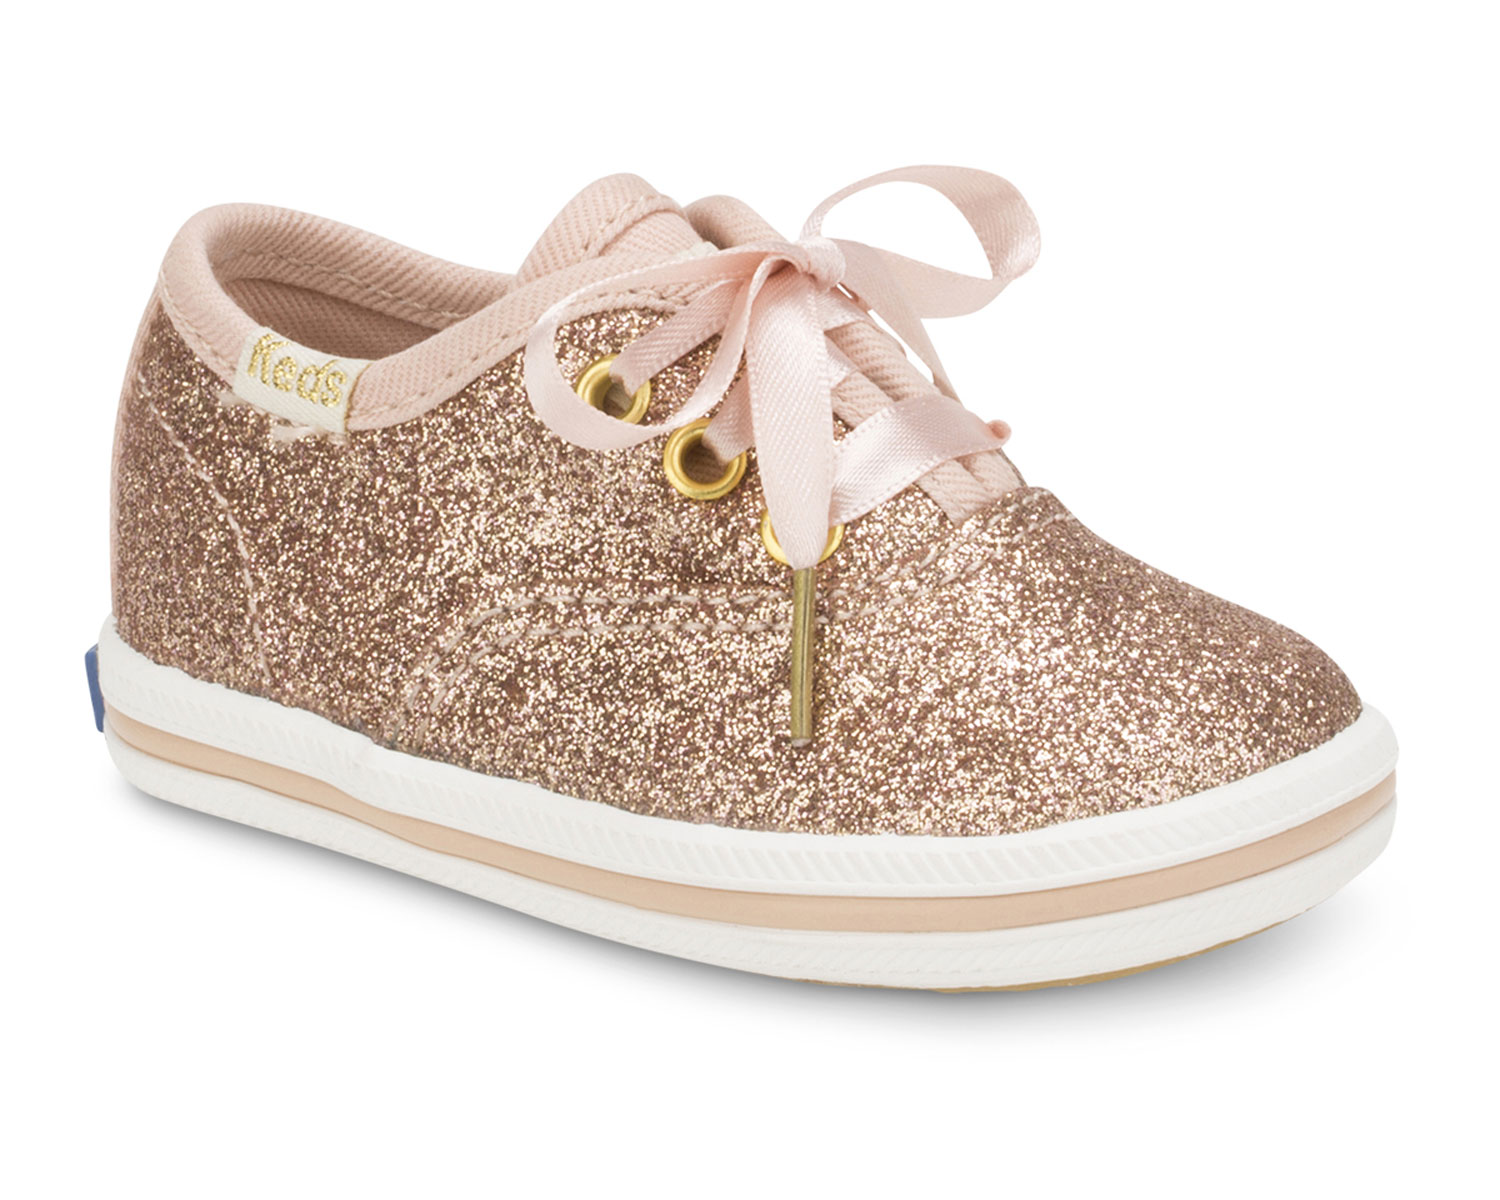 keds wedding shoes kate spade and keds also collaborated to create flower 5303